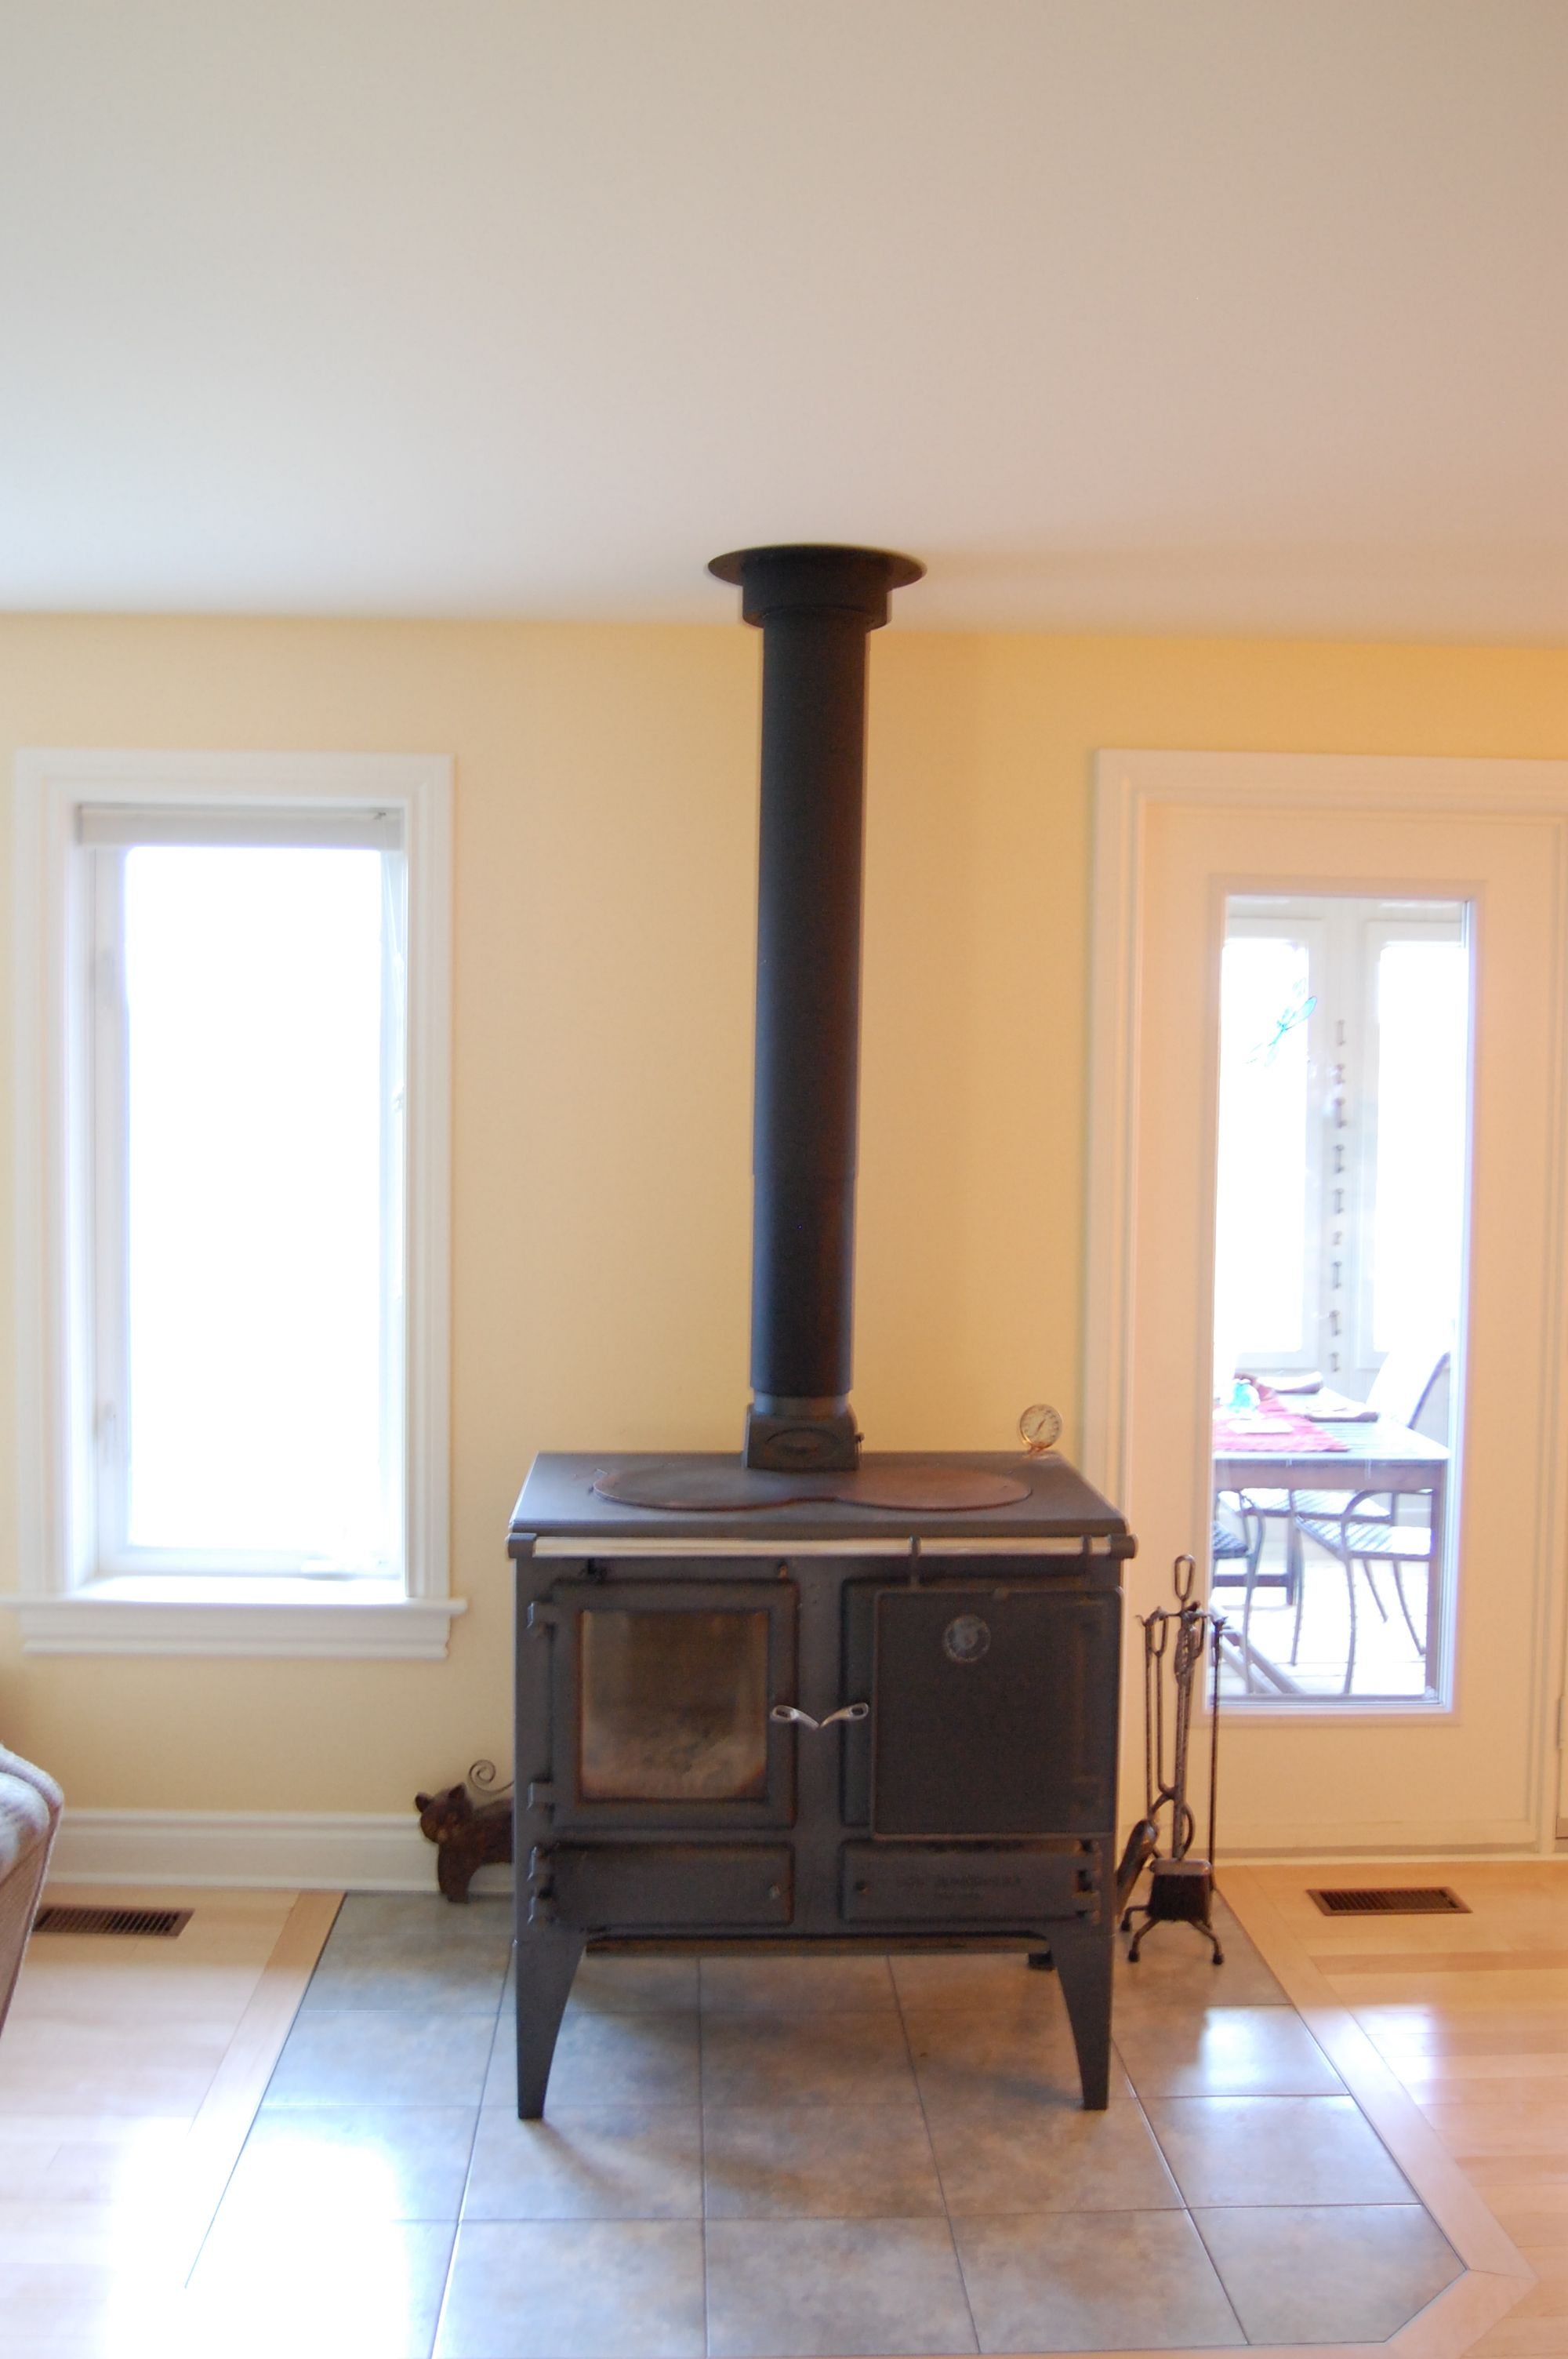 Nothing Wood Burning Stove Tile Surround Google Search No Back Protection